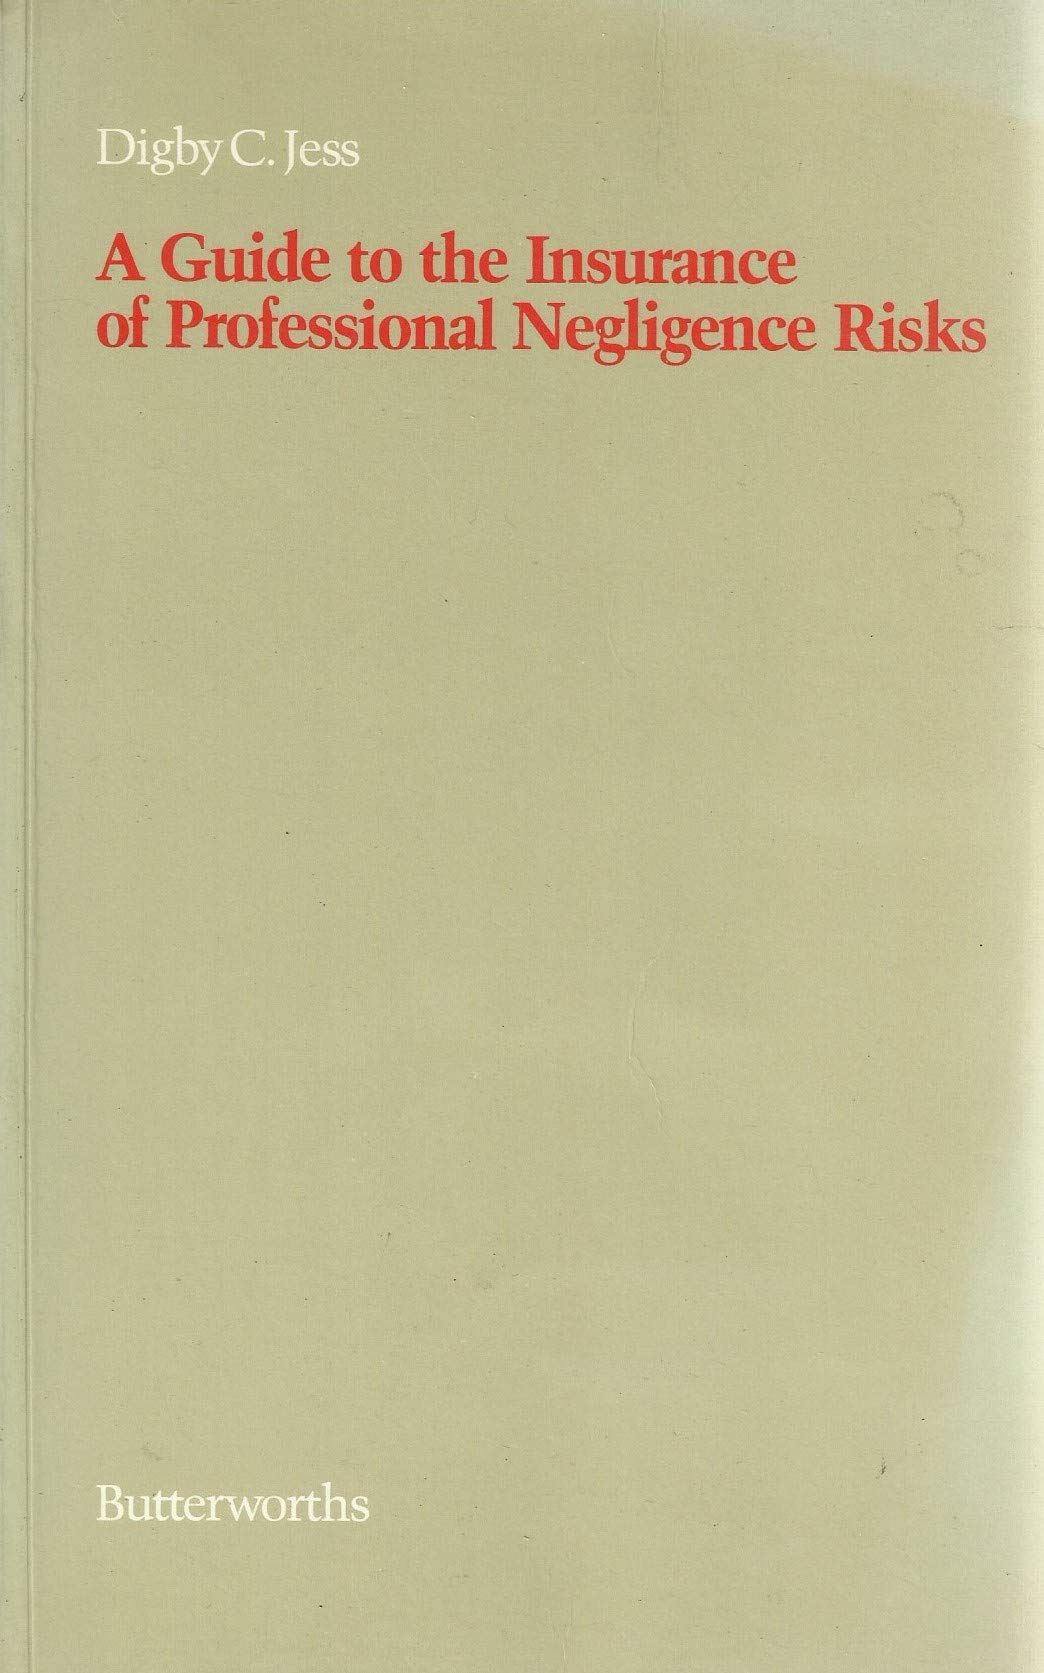 Guide to the Insurance of Professional Negligence Risks